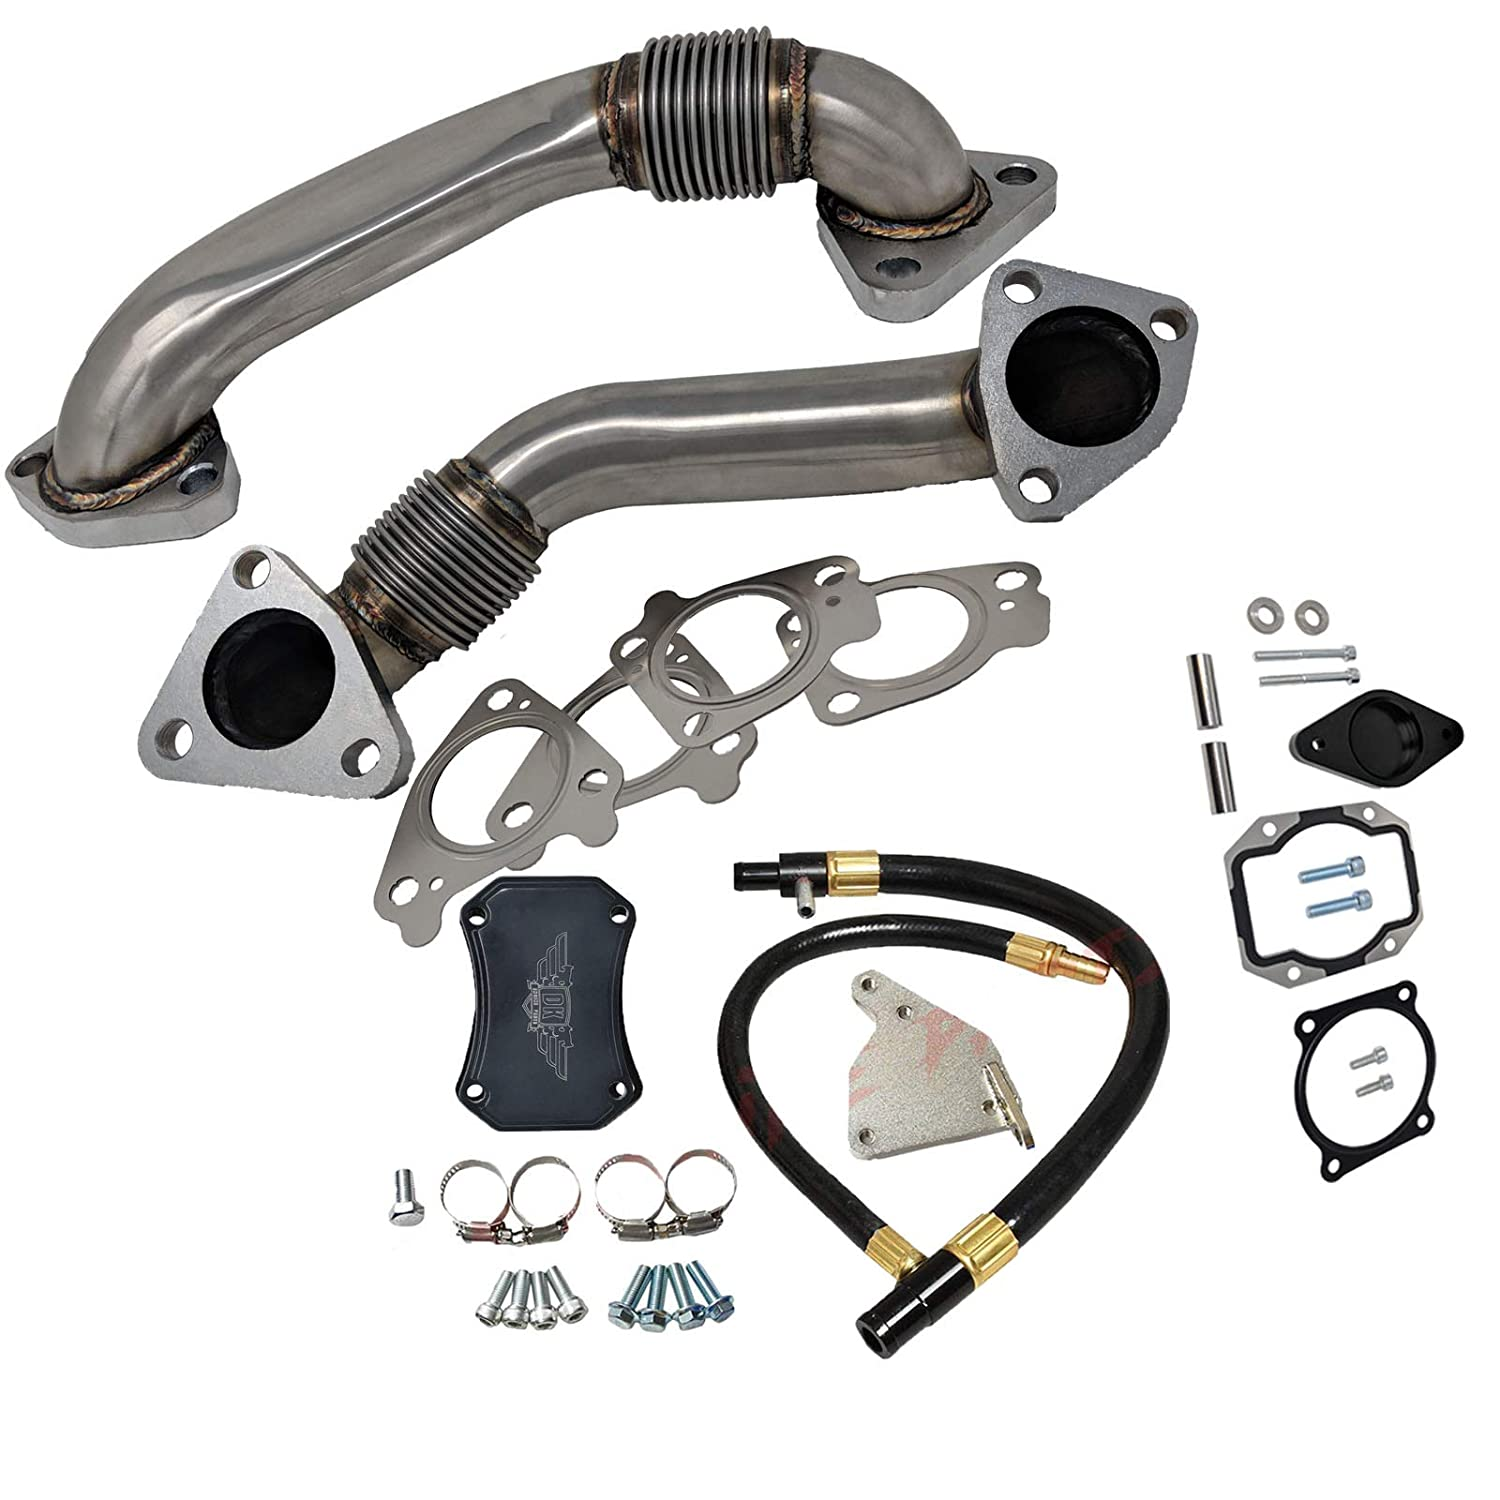 BOTH LBZ GM Chevrolet Duramax 6.6 6.6L EGR Valve Kit with Heavy Duty Exhaust Up Pipes